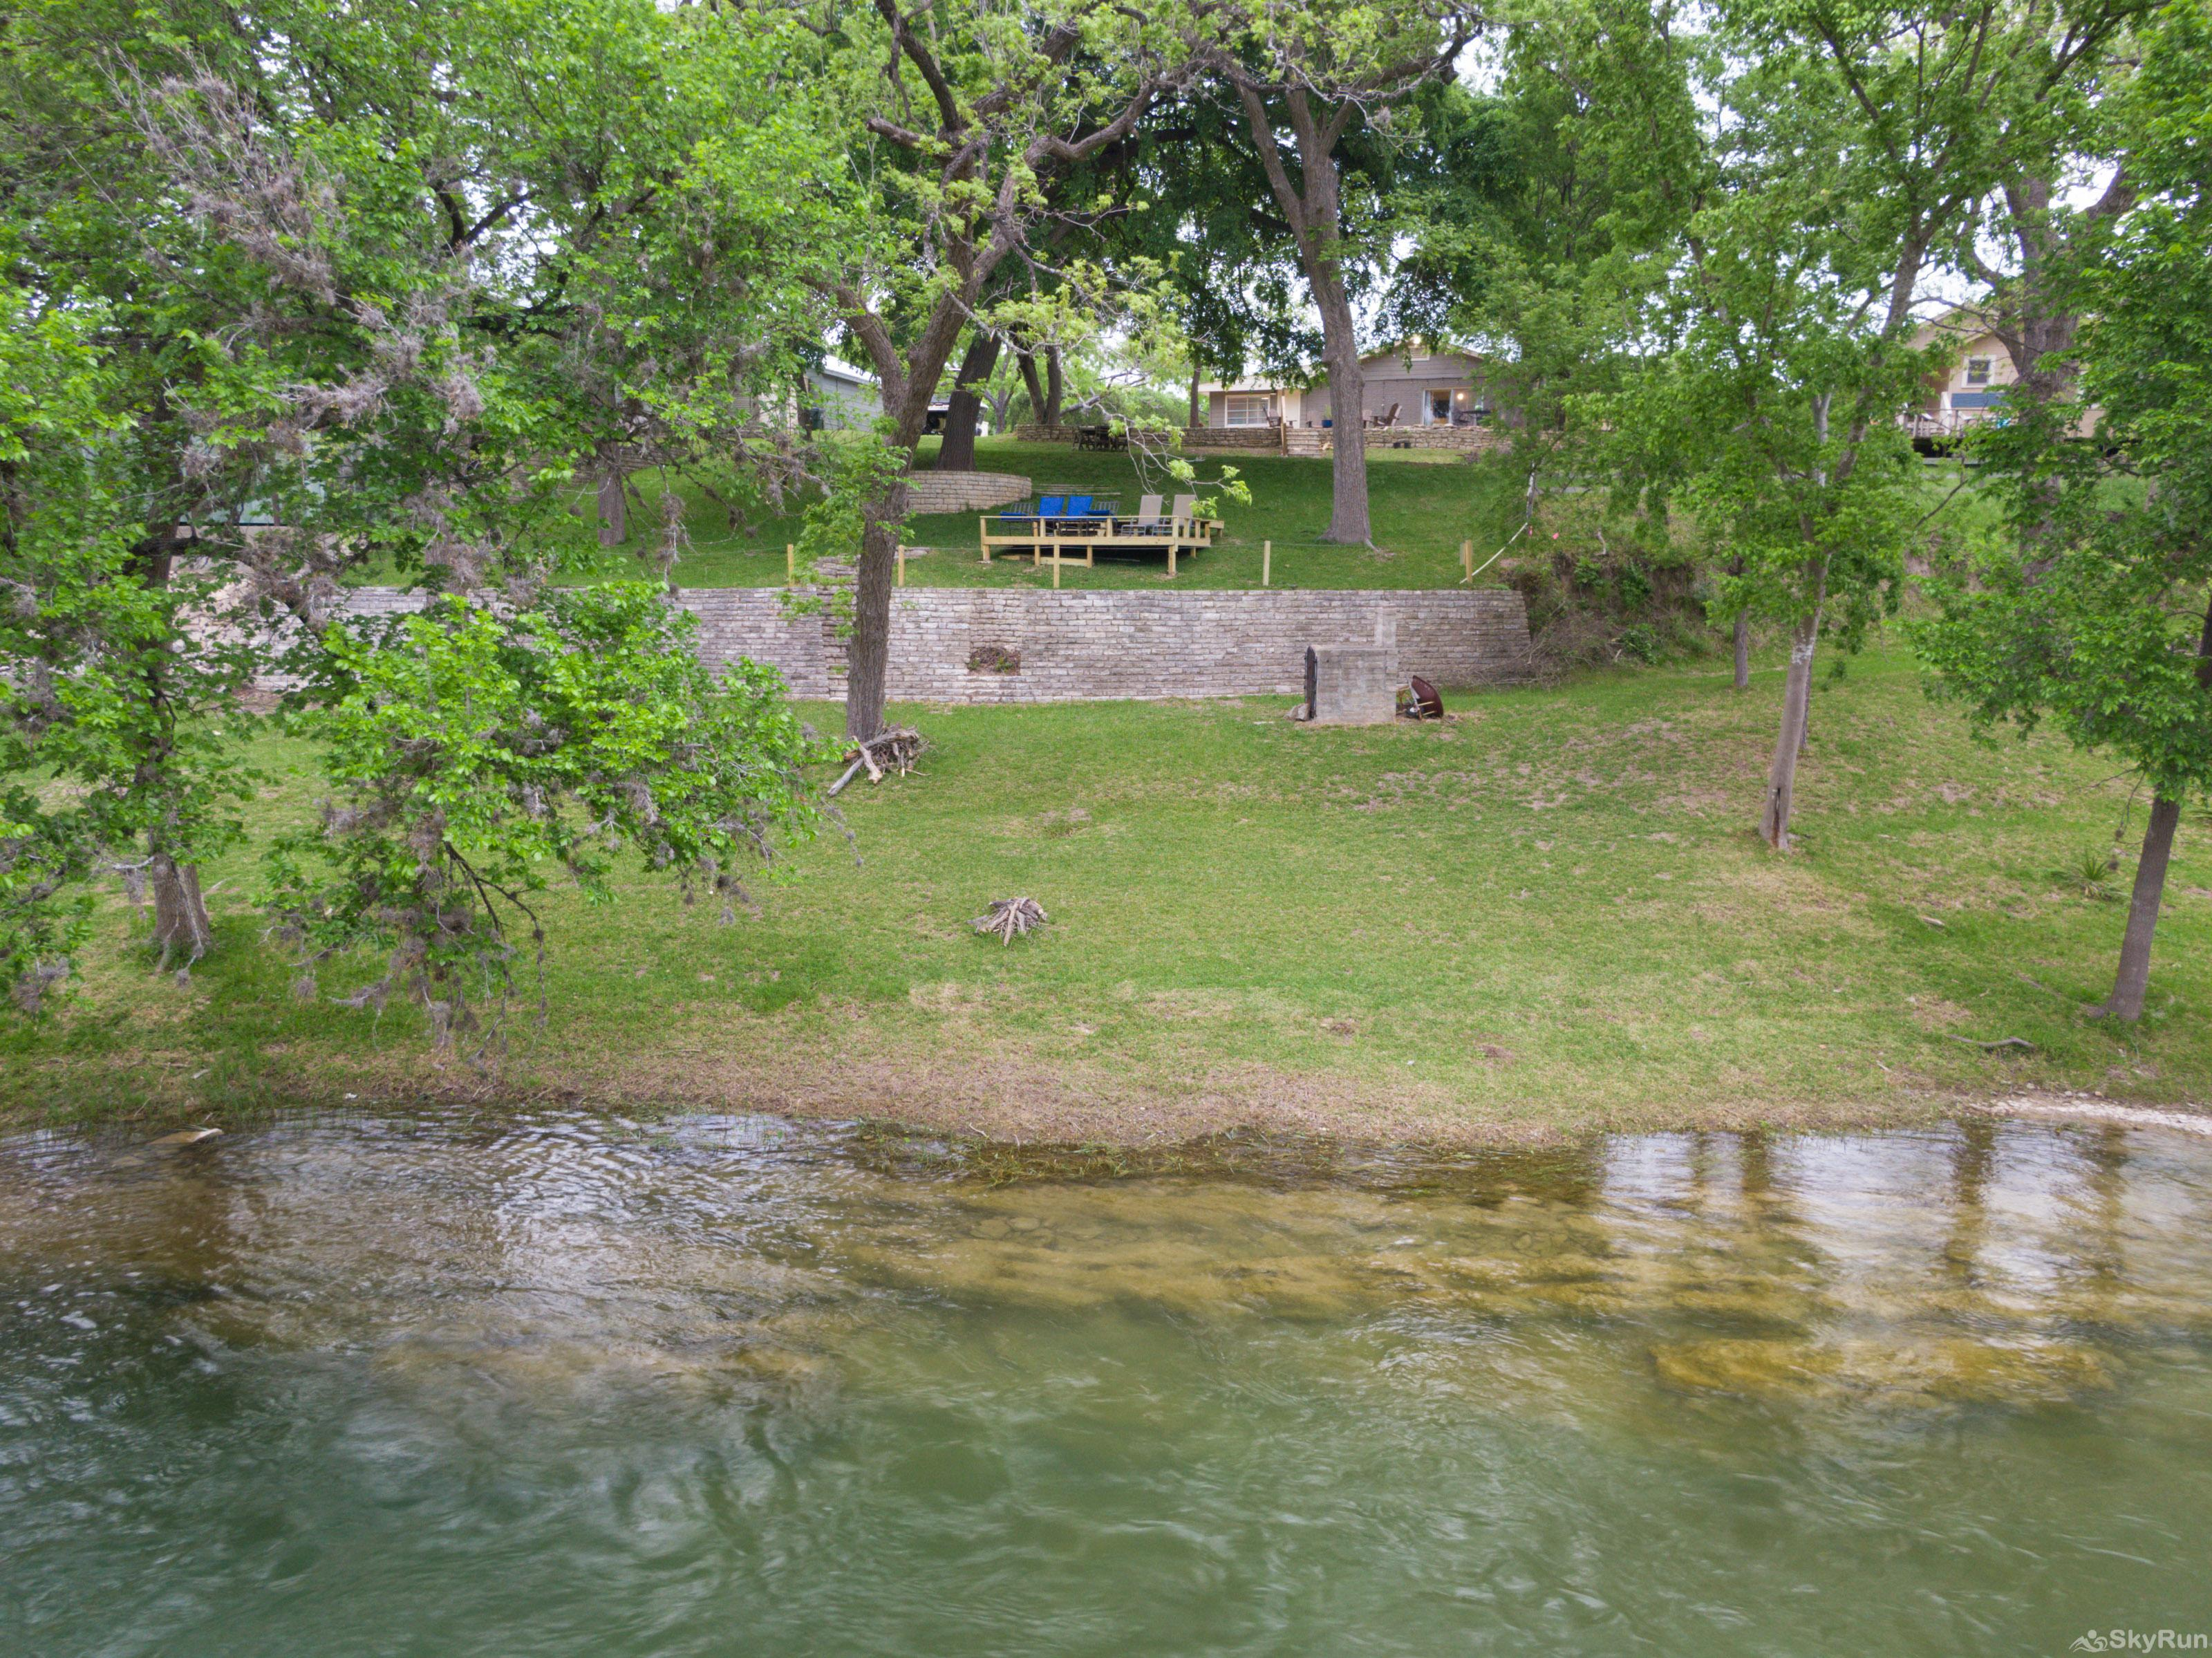 RIVER ROSE Crystal clear riverfront in the backyard